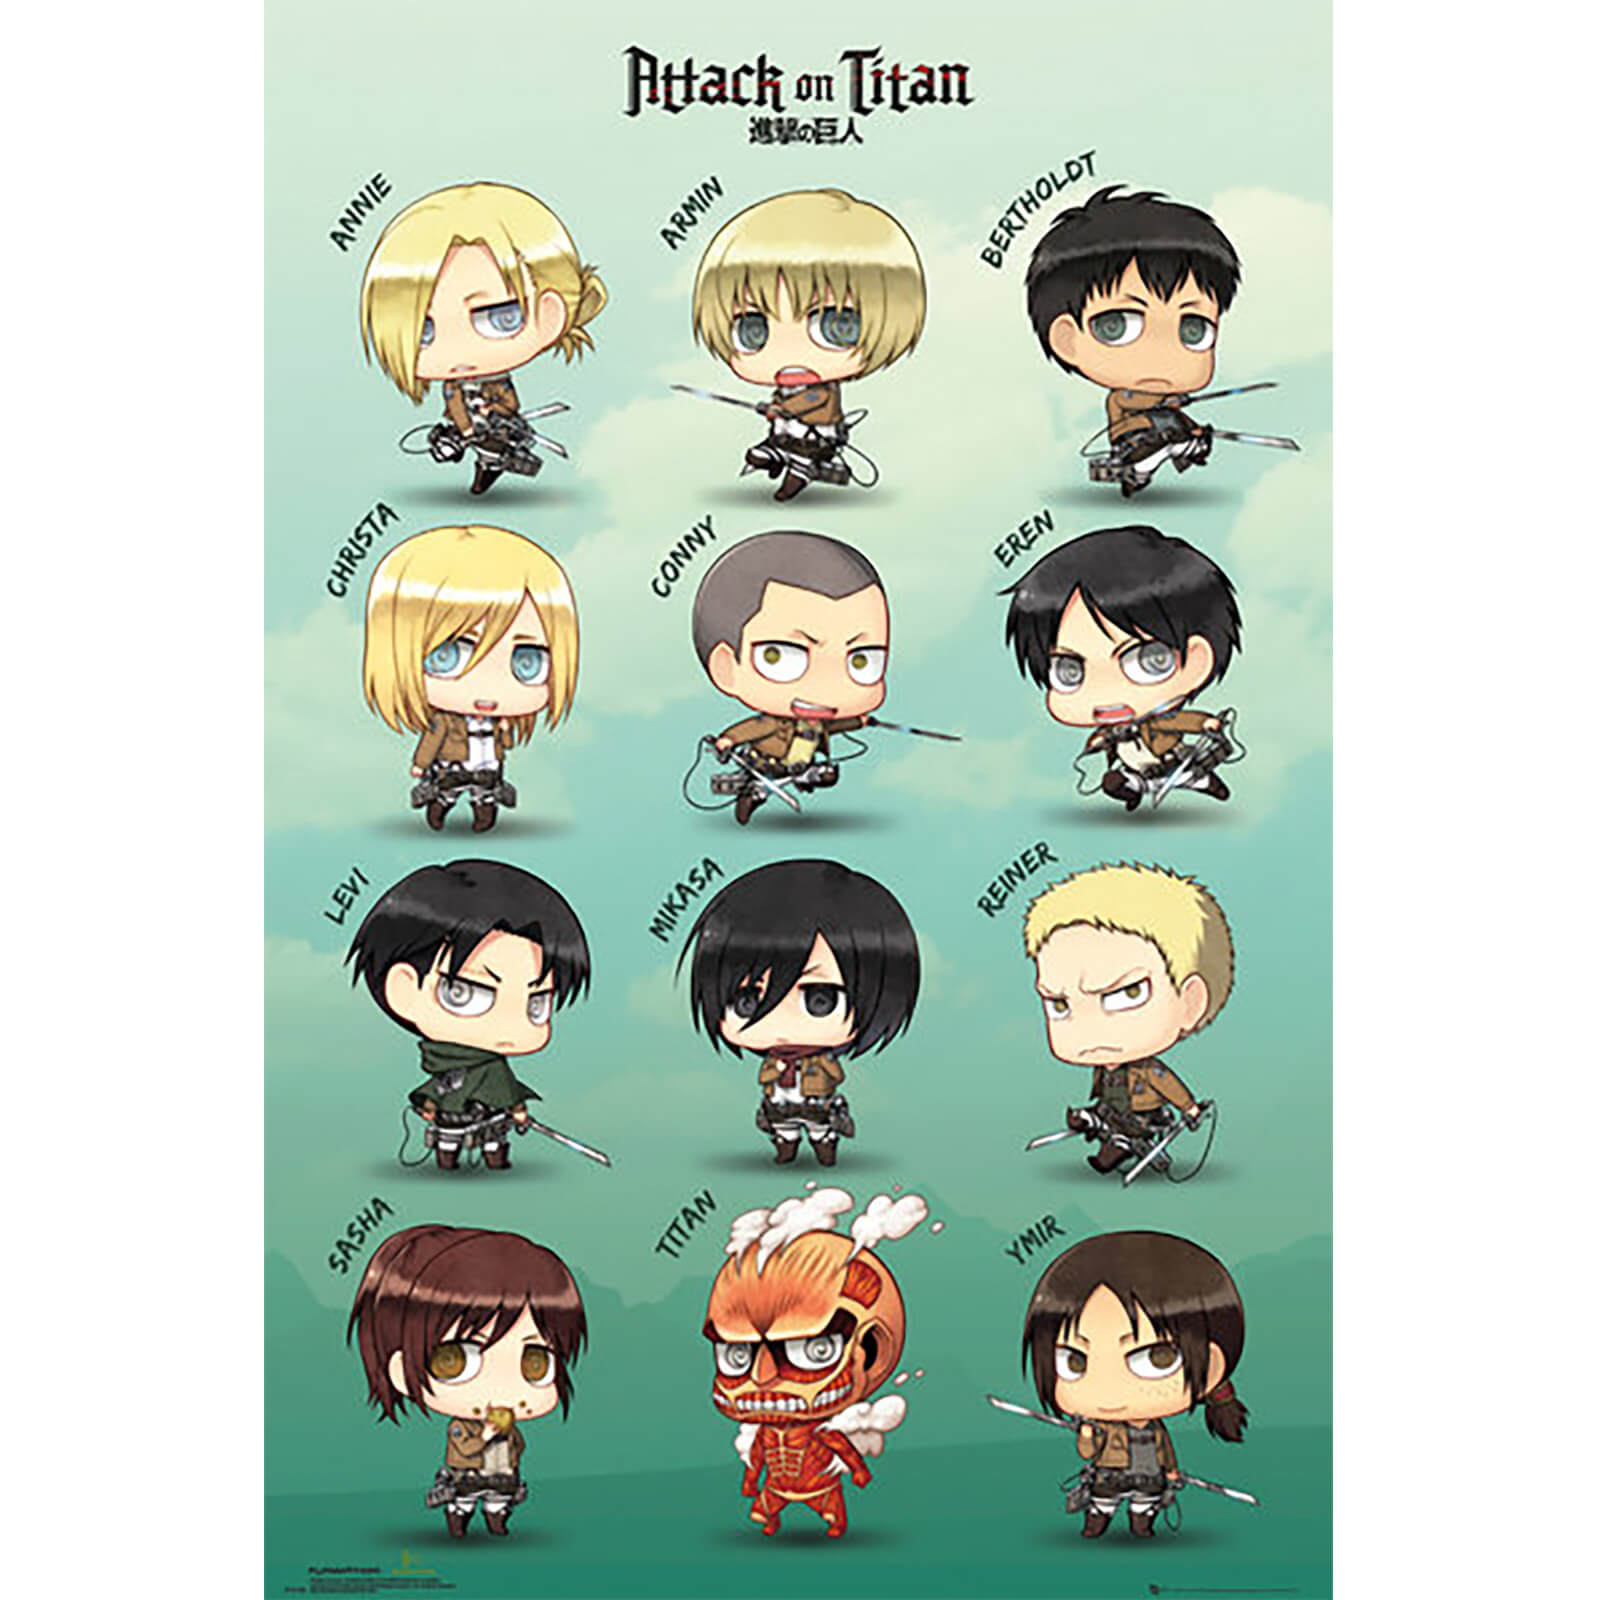 Attack on Titan Chibi Characters - Maxi Poster - 61 x 91.5cm